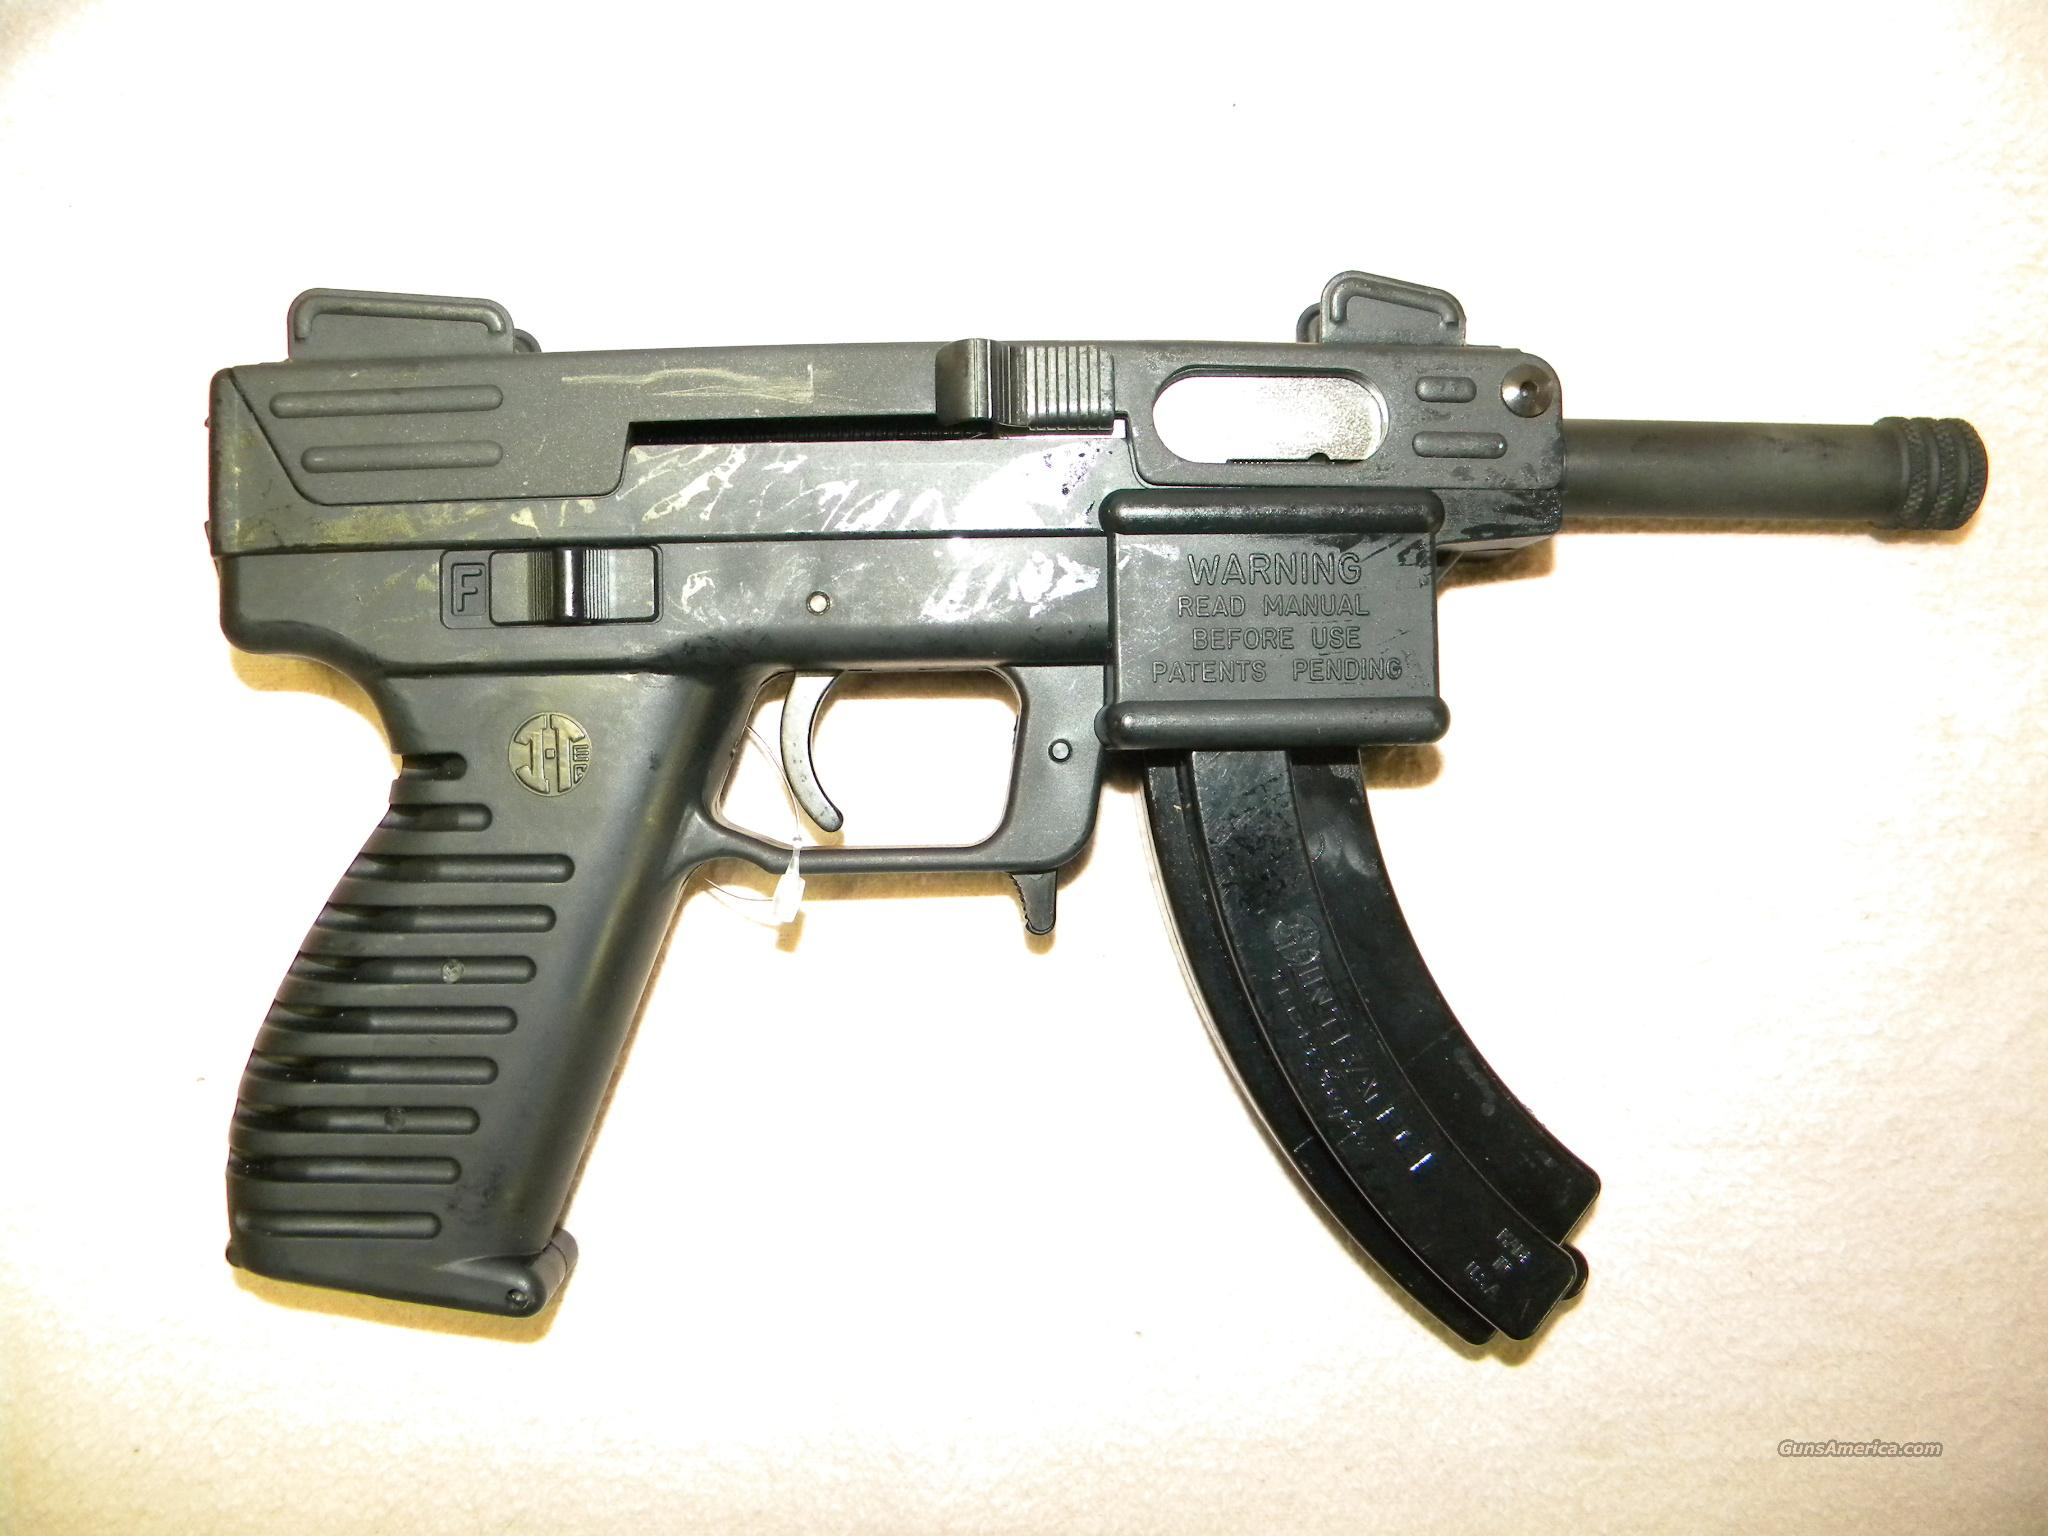 Intratec Tec-22/Scorpion   Guns > Pistols > Intratec Pistols